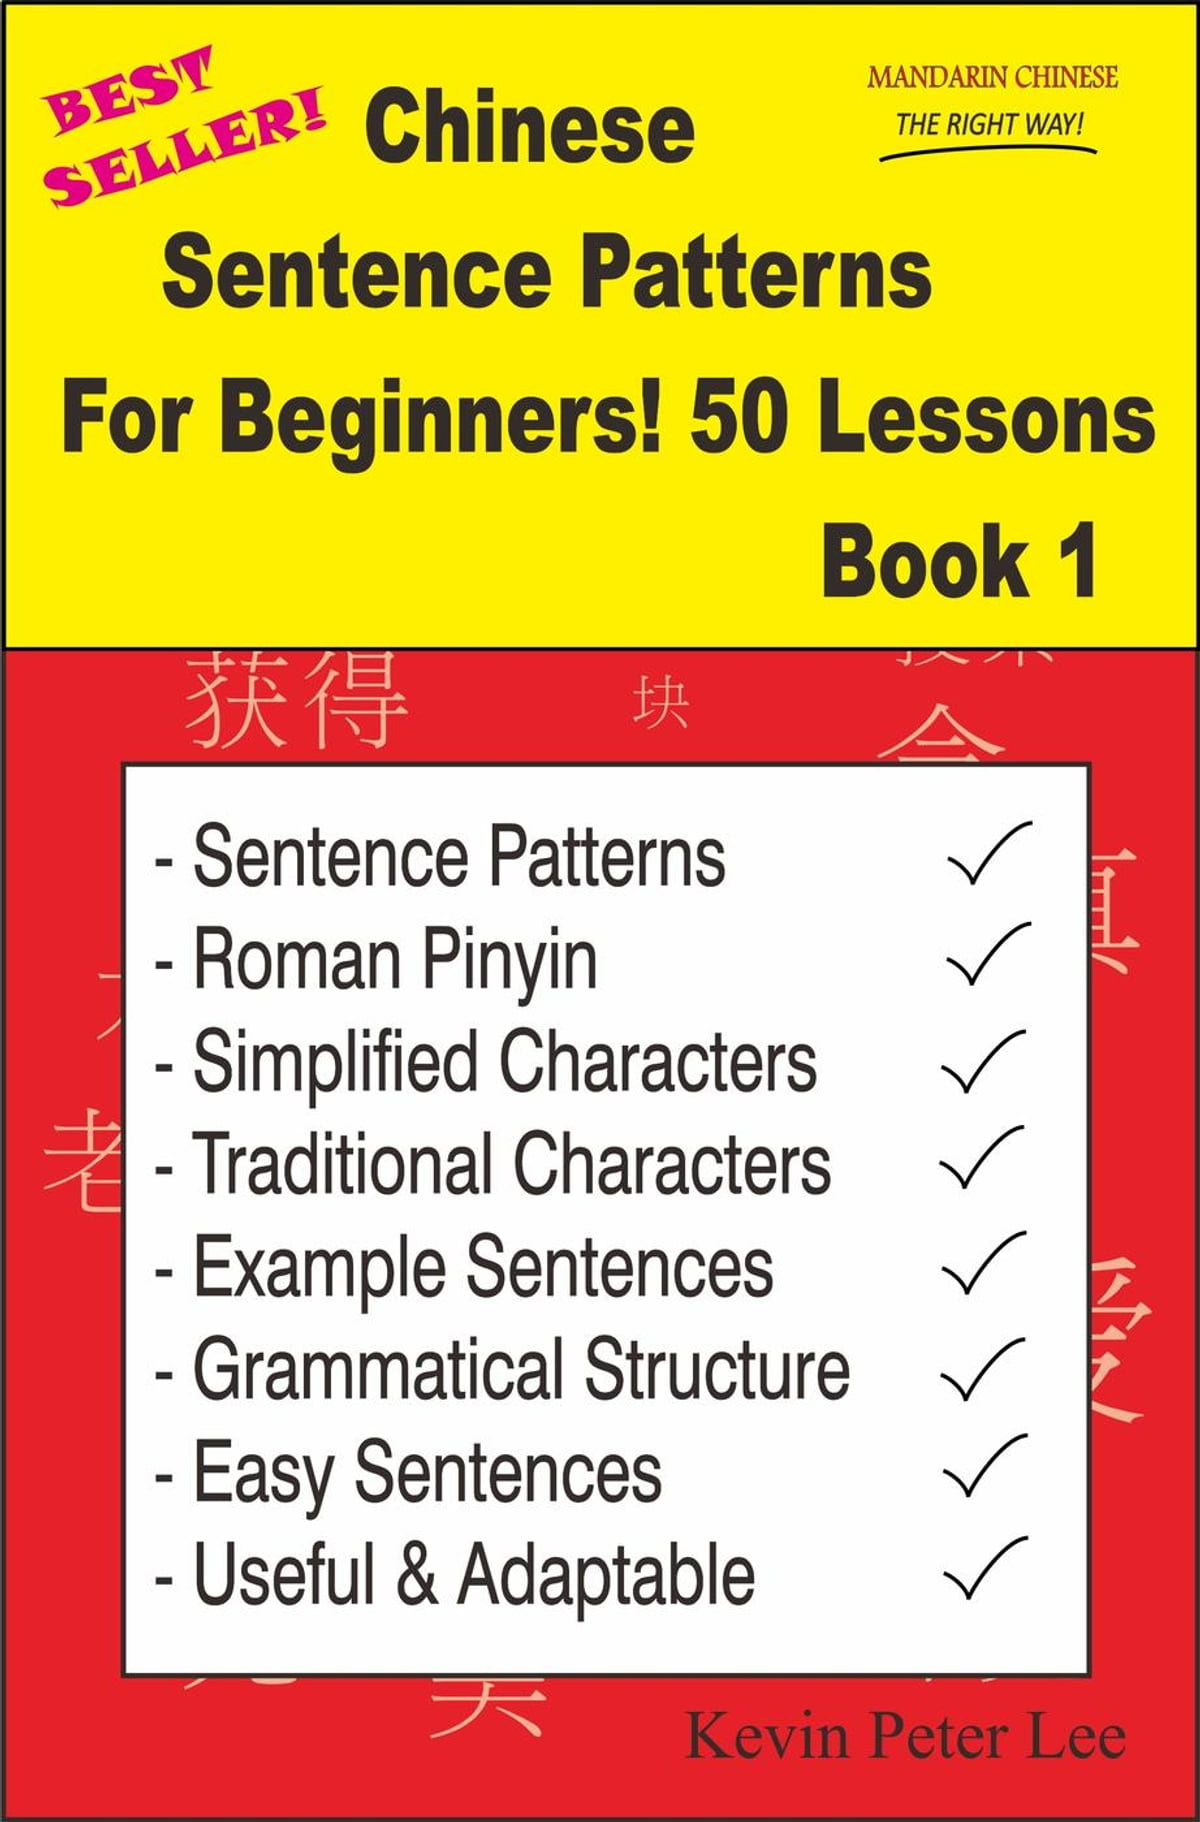 Chinese Sentence Patterns For Beginners 50 Lessons Book 1